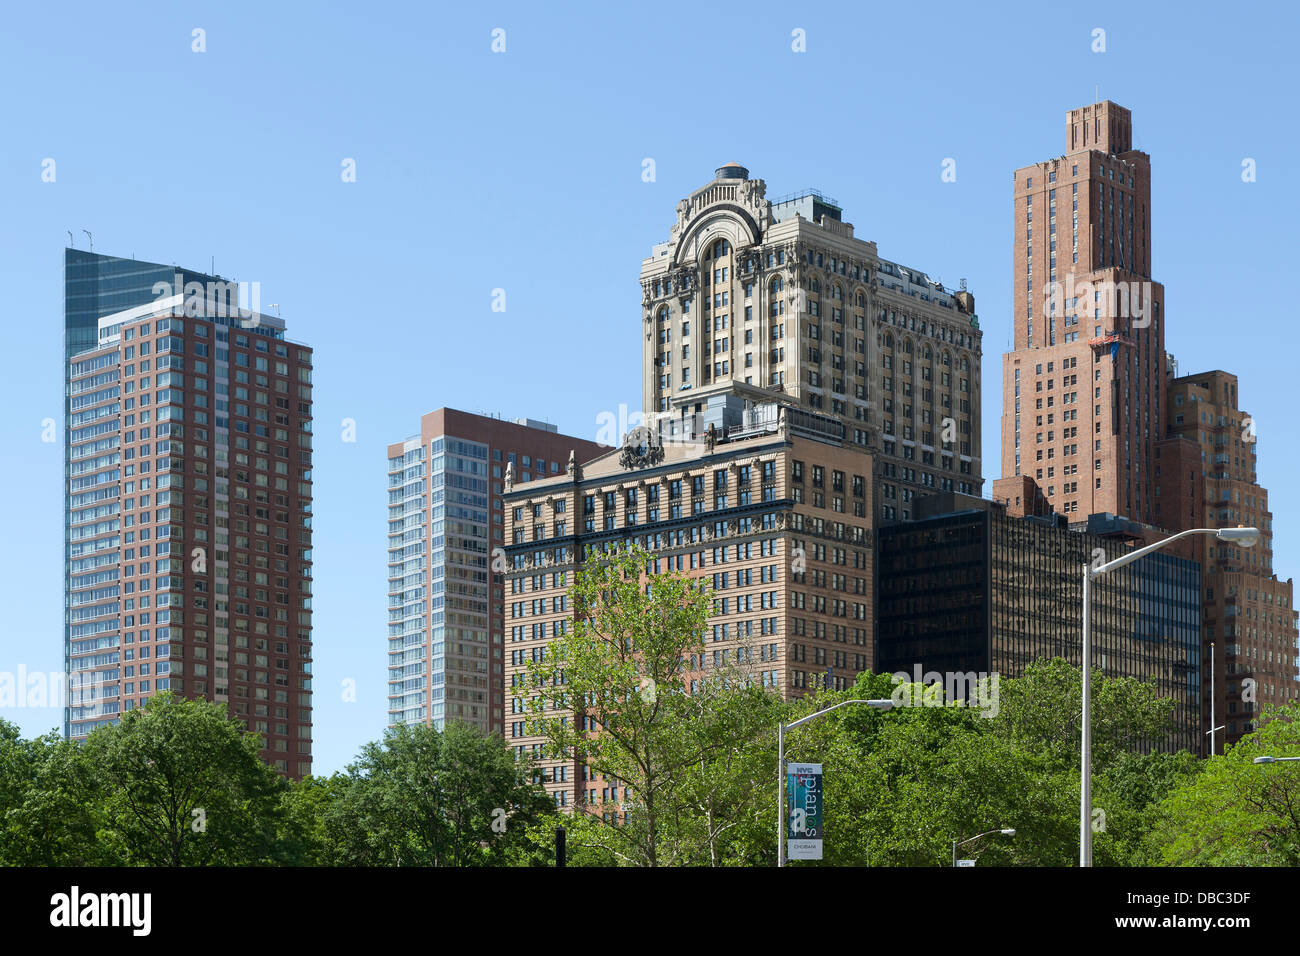 The Whitehall Building - 17 Battery Place NY in New York City - Stock Image